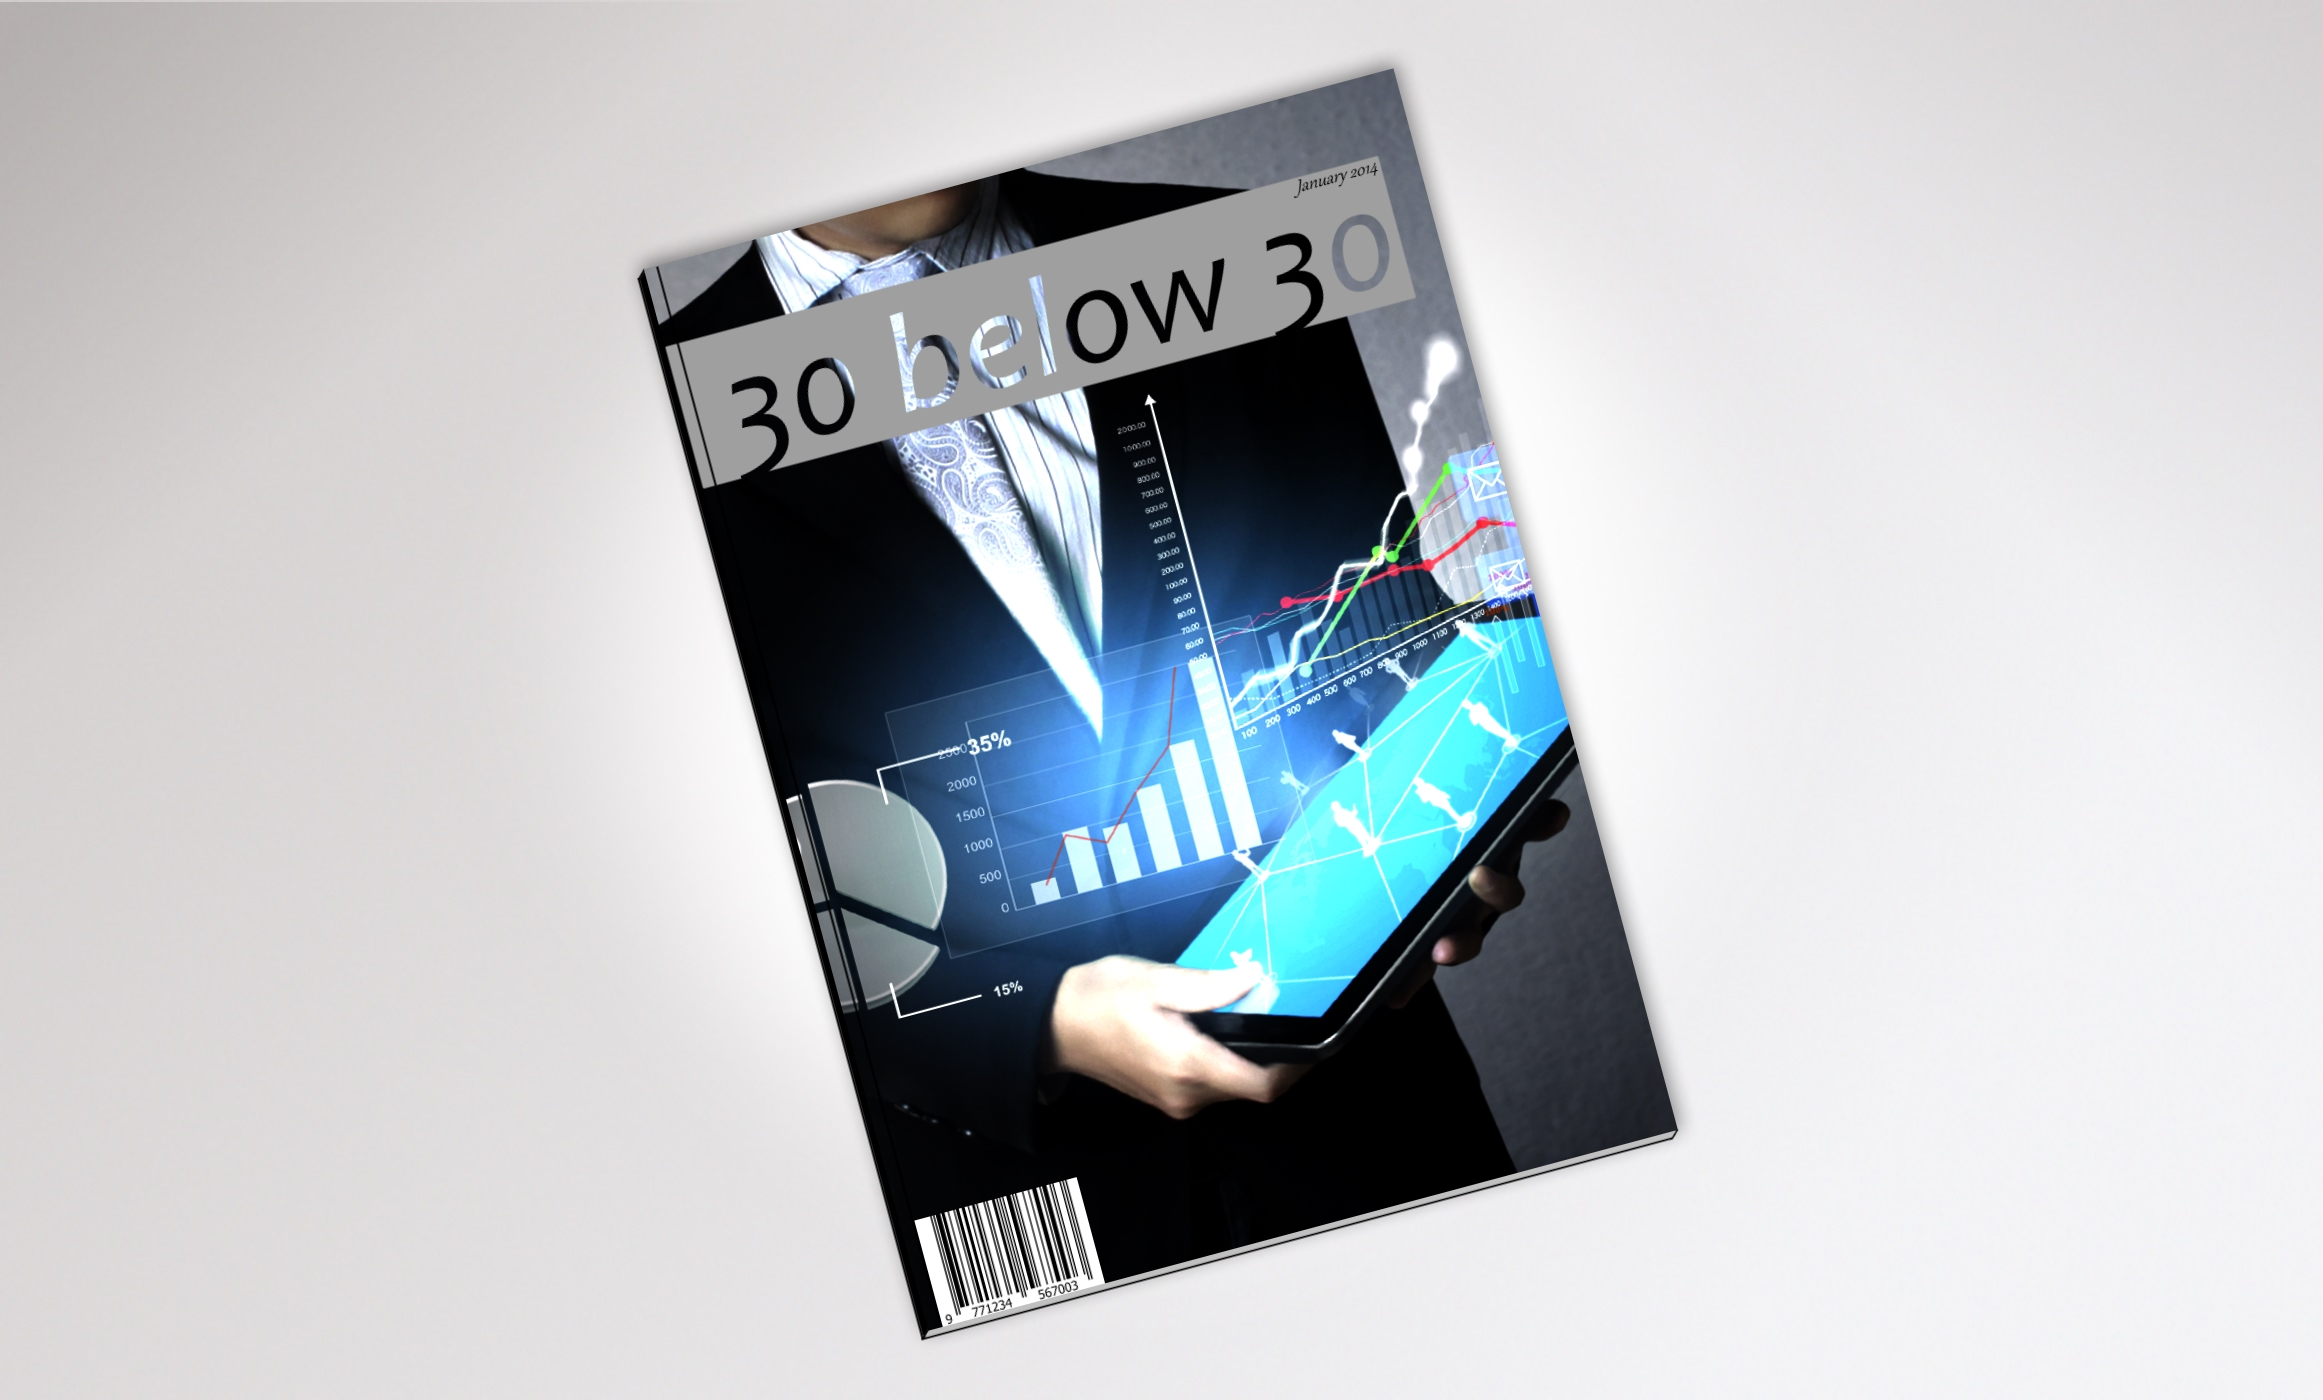 30 Below 30 Finance Magazine